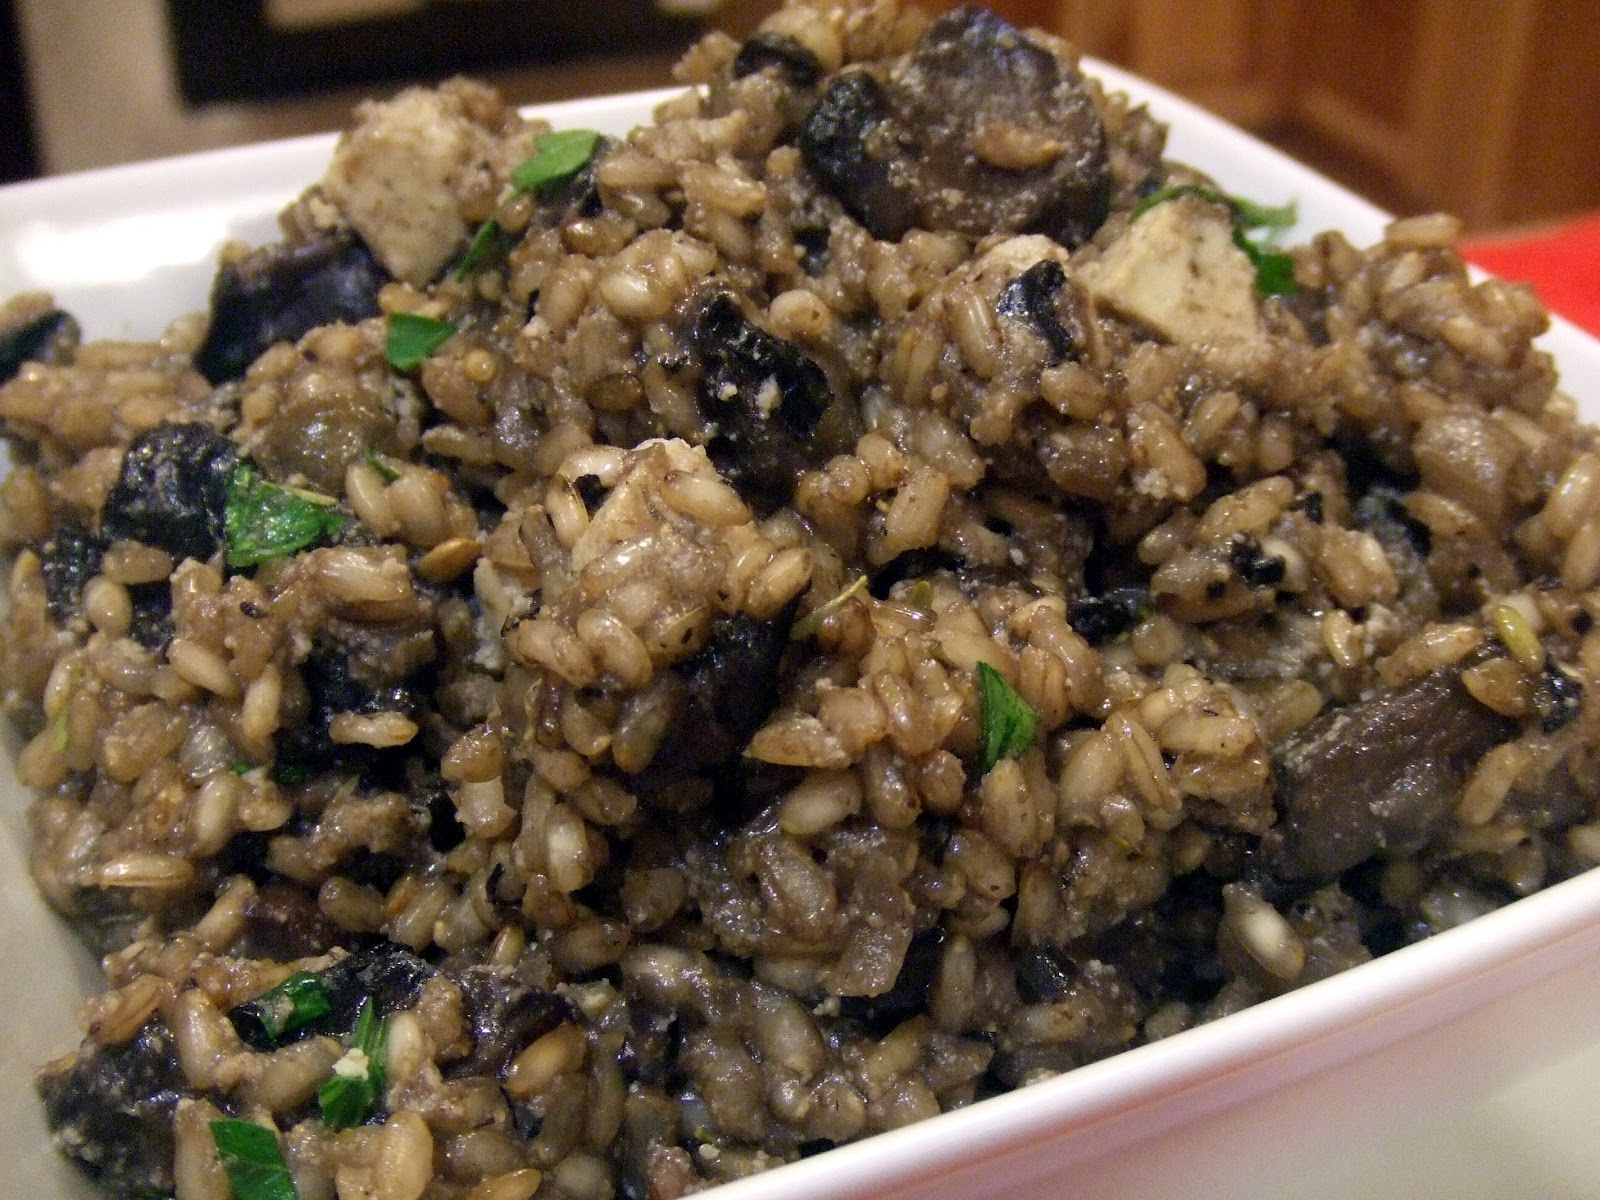 Veganmofo: Gordon Ramsay And Brown Rice Risotto With Portobello Mushrooms  And Soy Blue Cheese